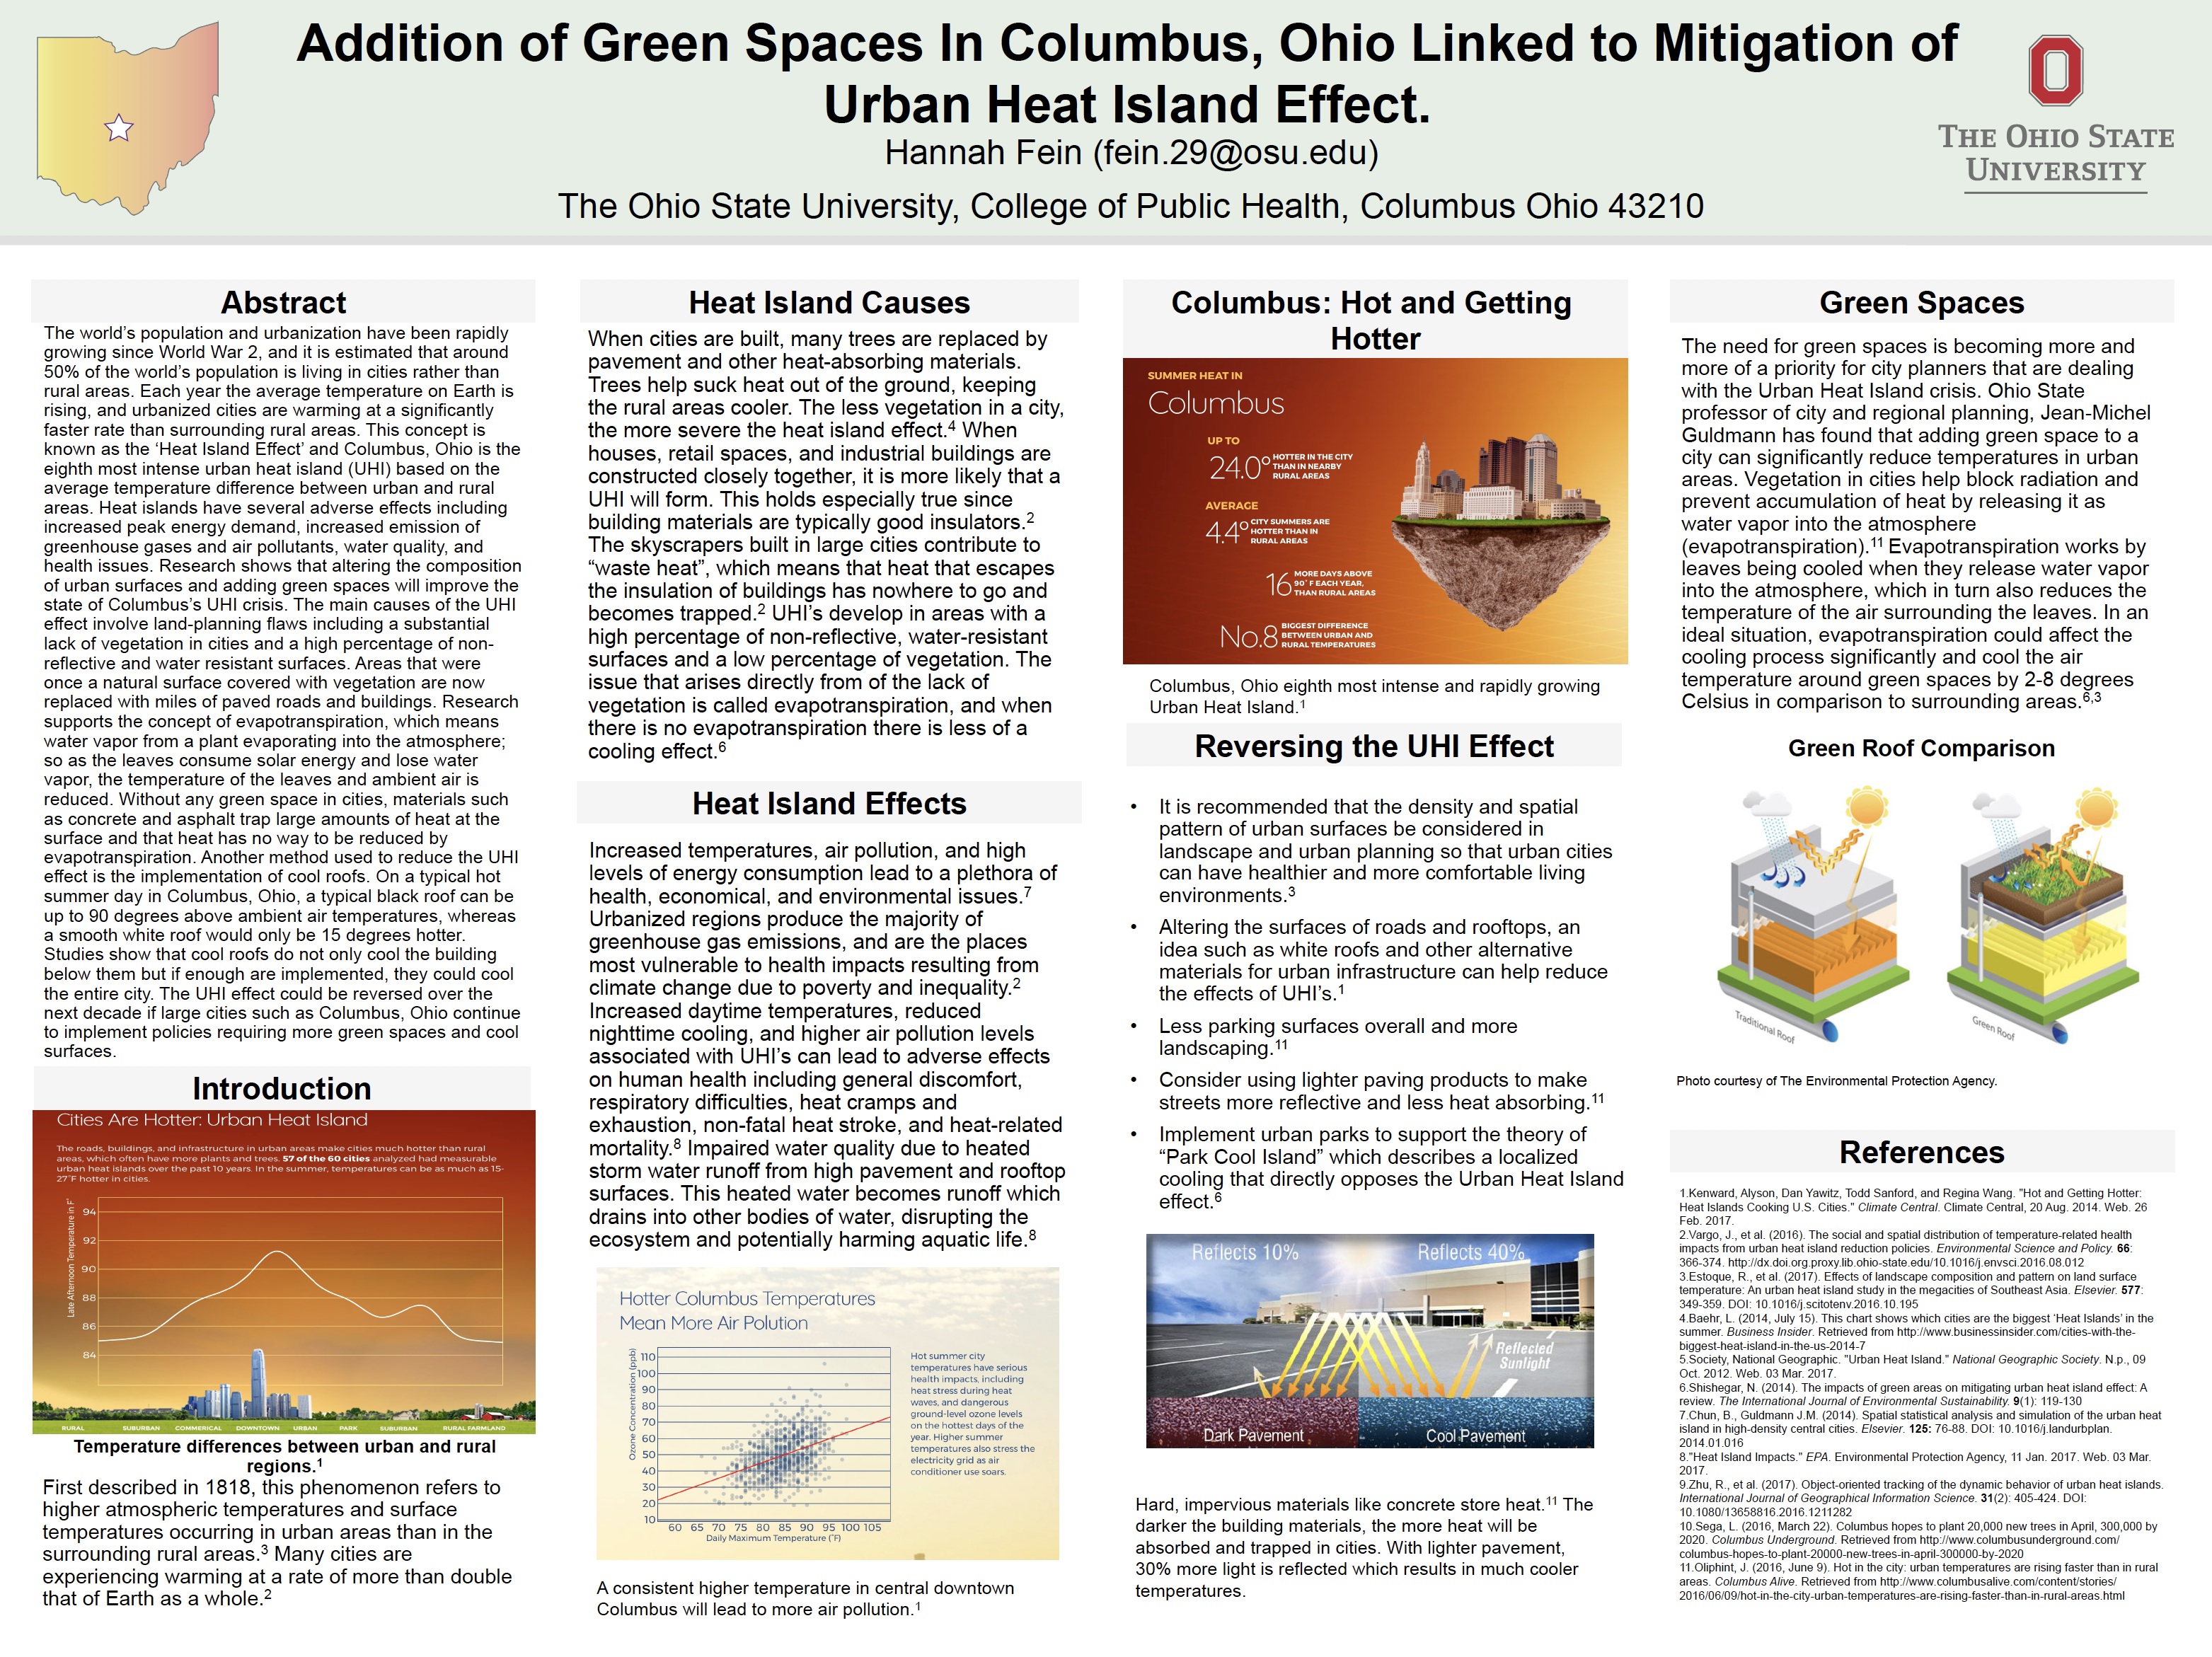 Student created scientific poster entitled Addition of Green Spaces in Columbus, Ohio Linked to Mitigation of Urban Heat Island Effect. Poster was created by Hannah Fein, The Ohio State University, College of Public Health, Columbus Ohio 43210.